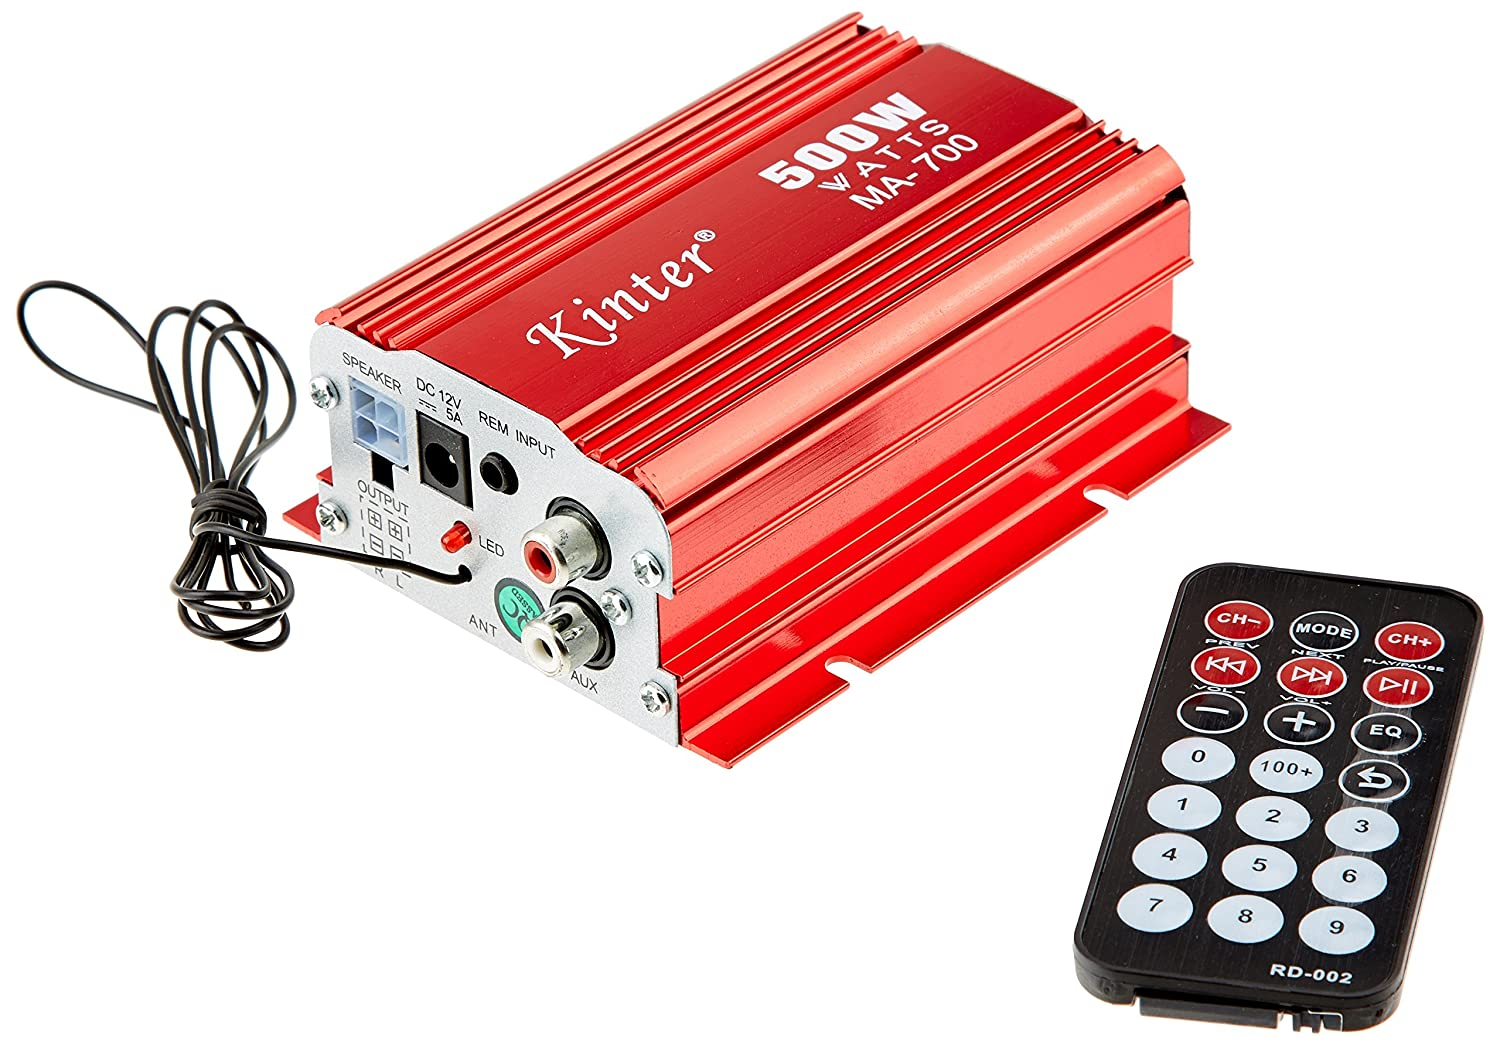 Kinter MA-700 - Amplificador hí brido (500 W, doble canal, USB), color rojo Kinter Spain MA 700